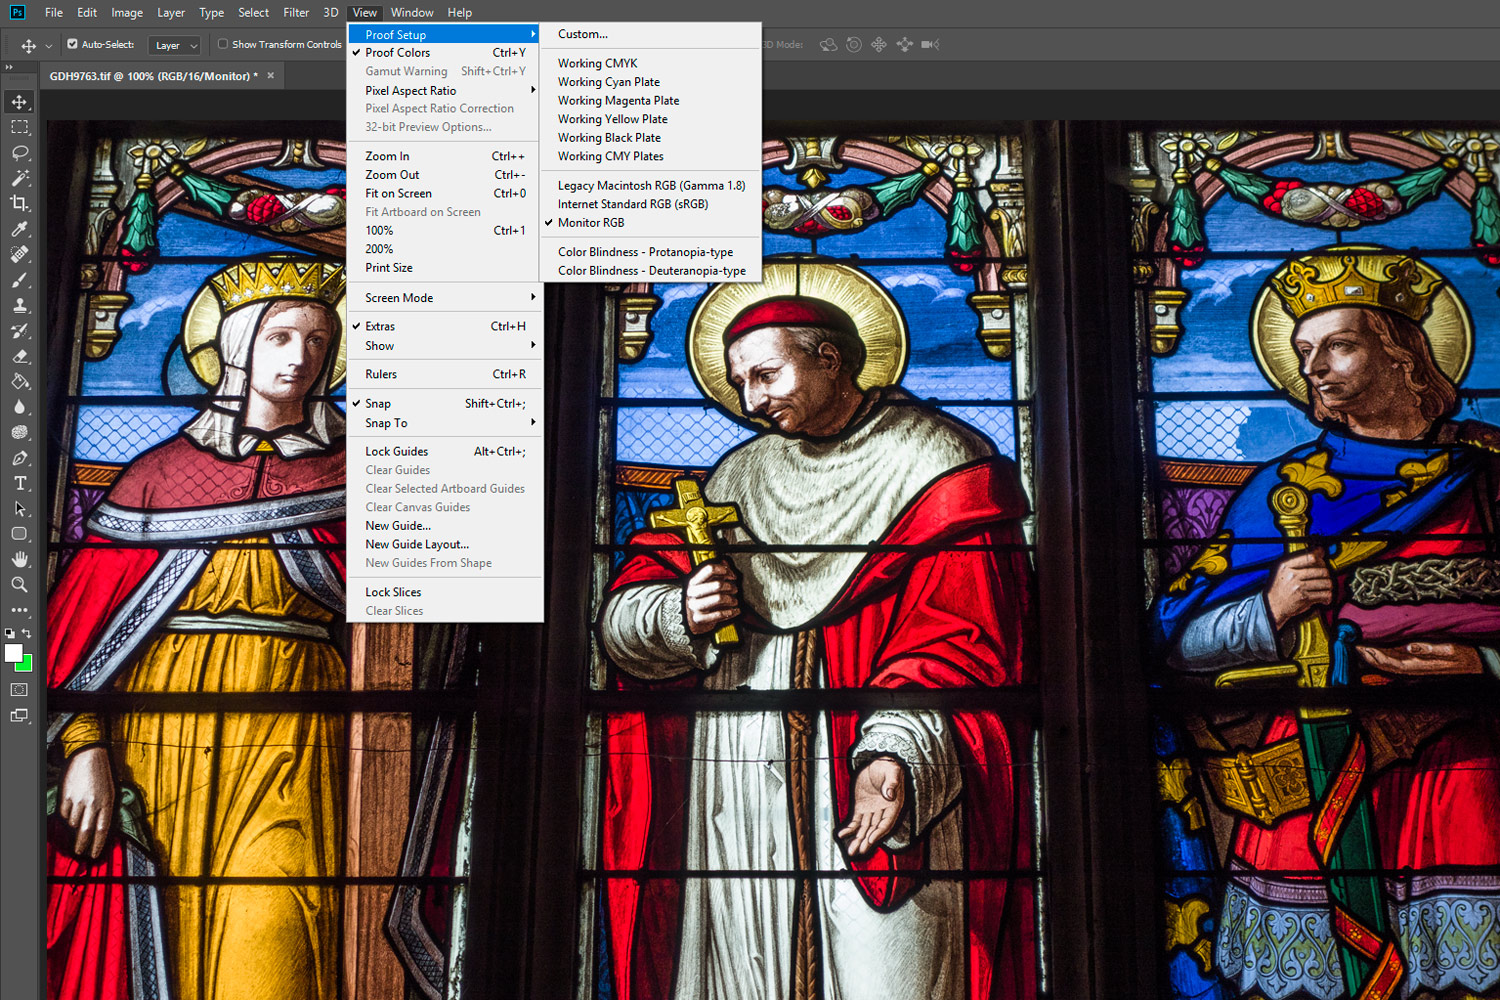 Web browser proof colors - How to Choose the Right Color Settings For Sharing Images Online